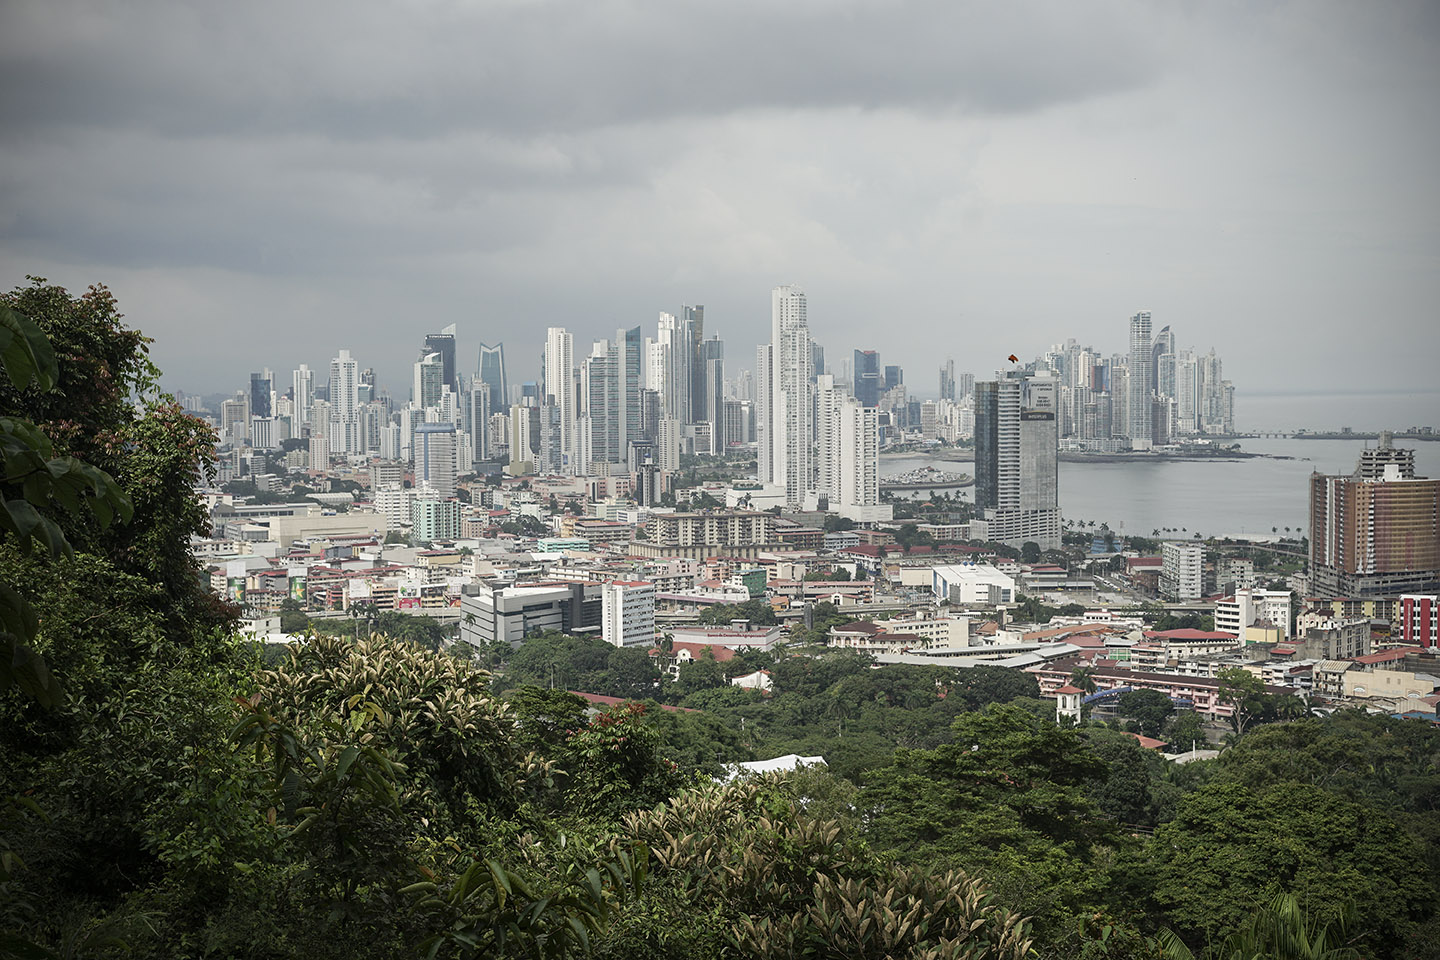 View from Ancon Hill